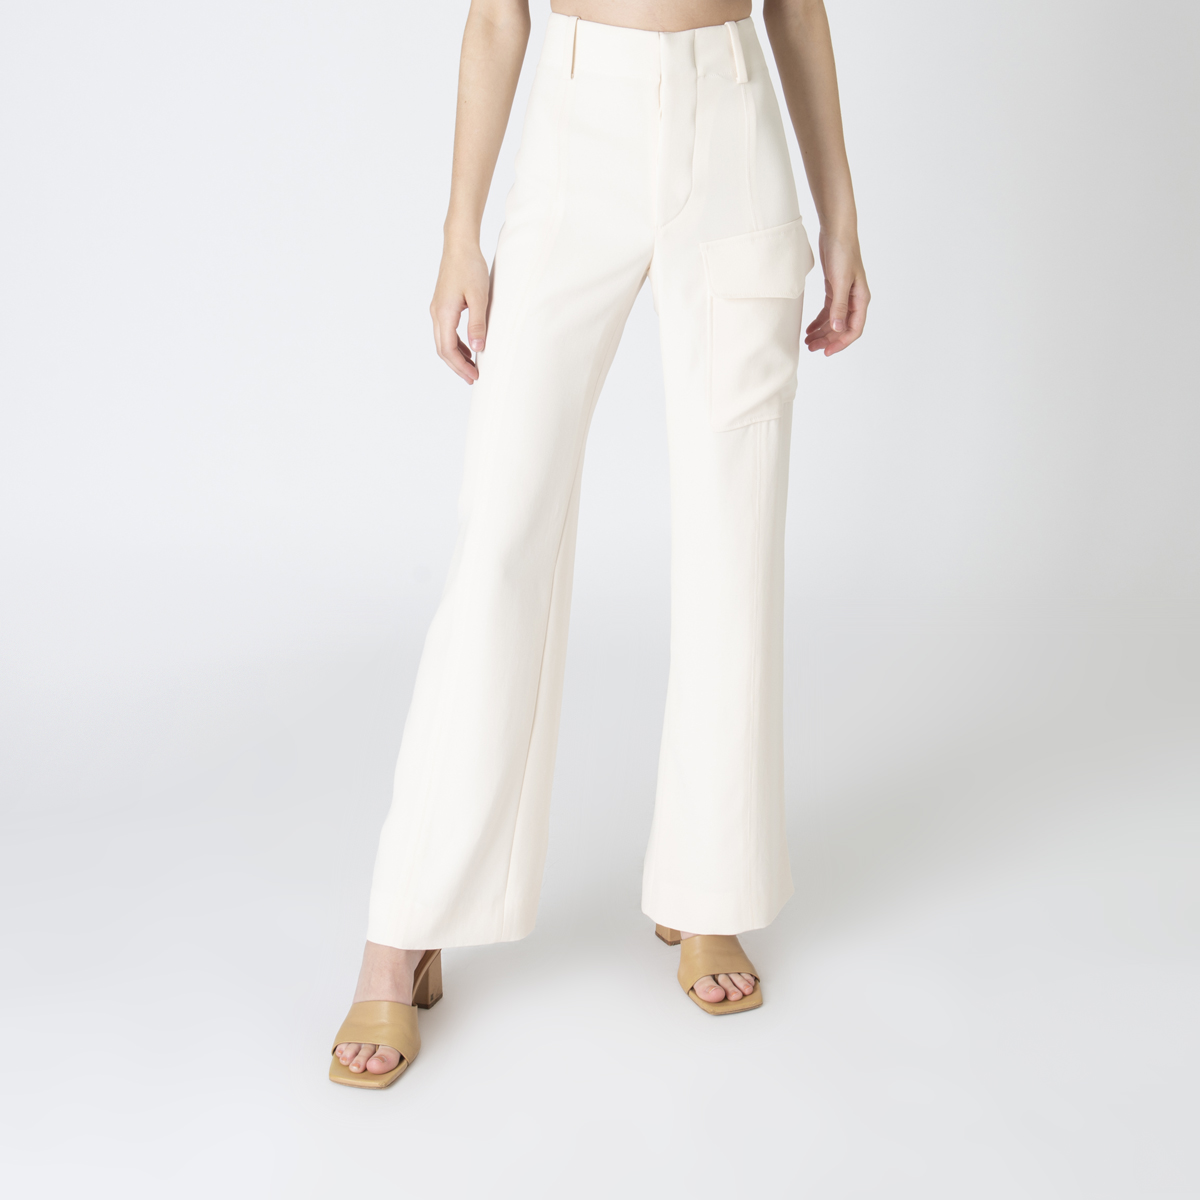 Chloé Wide-Leg Pants – New With Tags